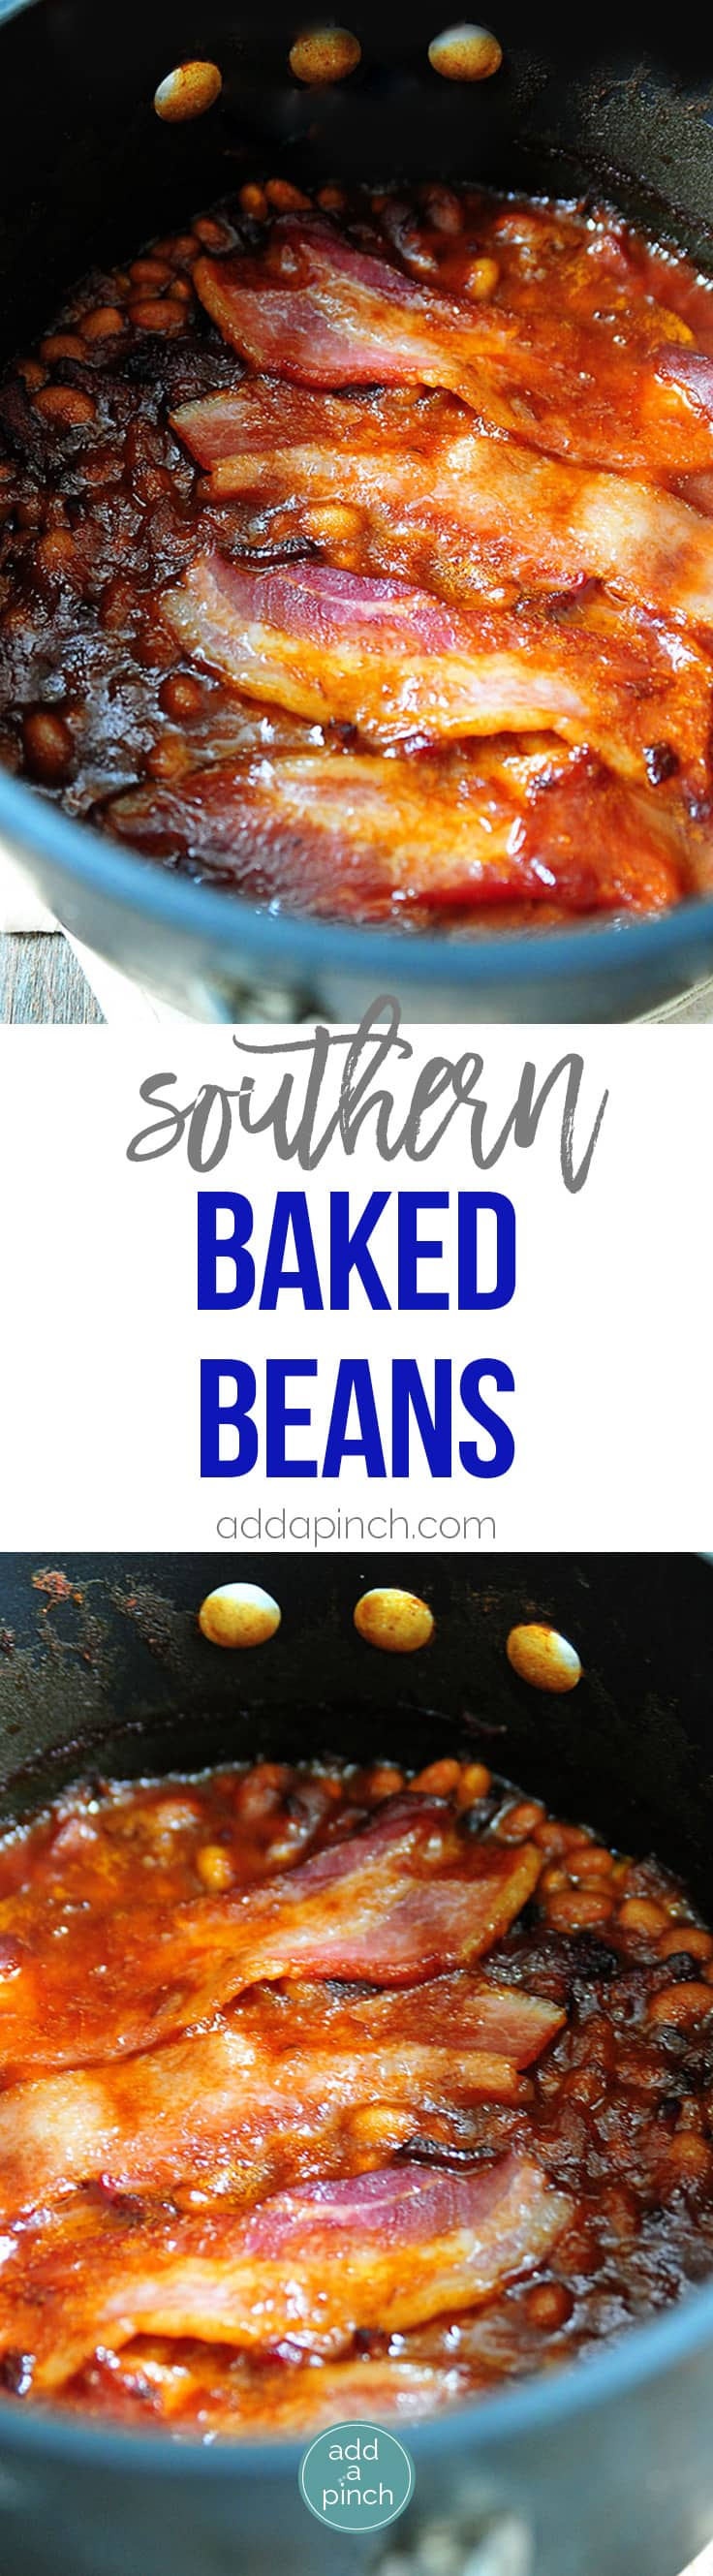 Southern Baked Beans Recipe - This recipe makes the perfect side dish for so many meals! This easy baked beans recipe will become a favorite! // addapinch.com